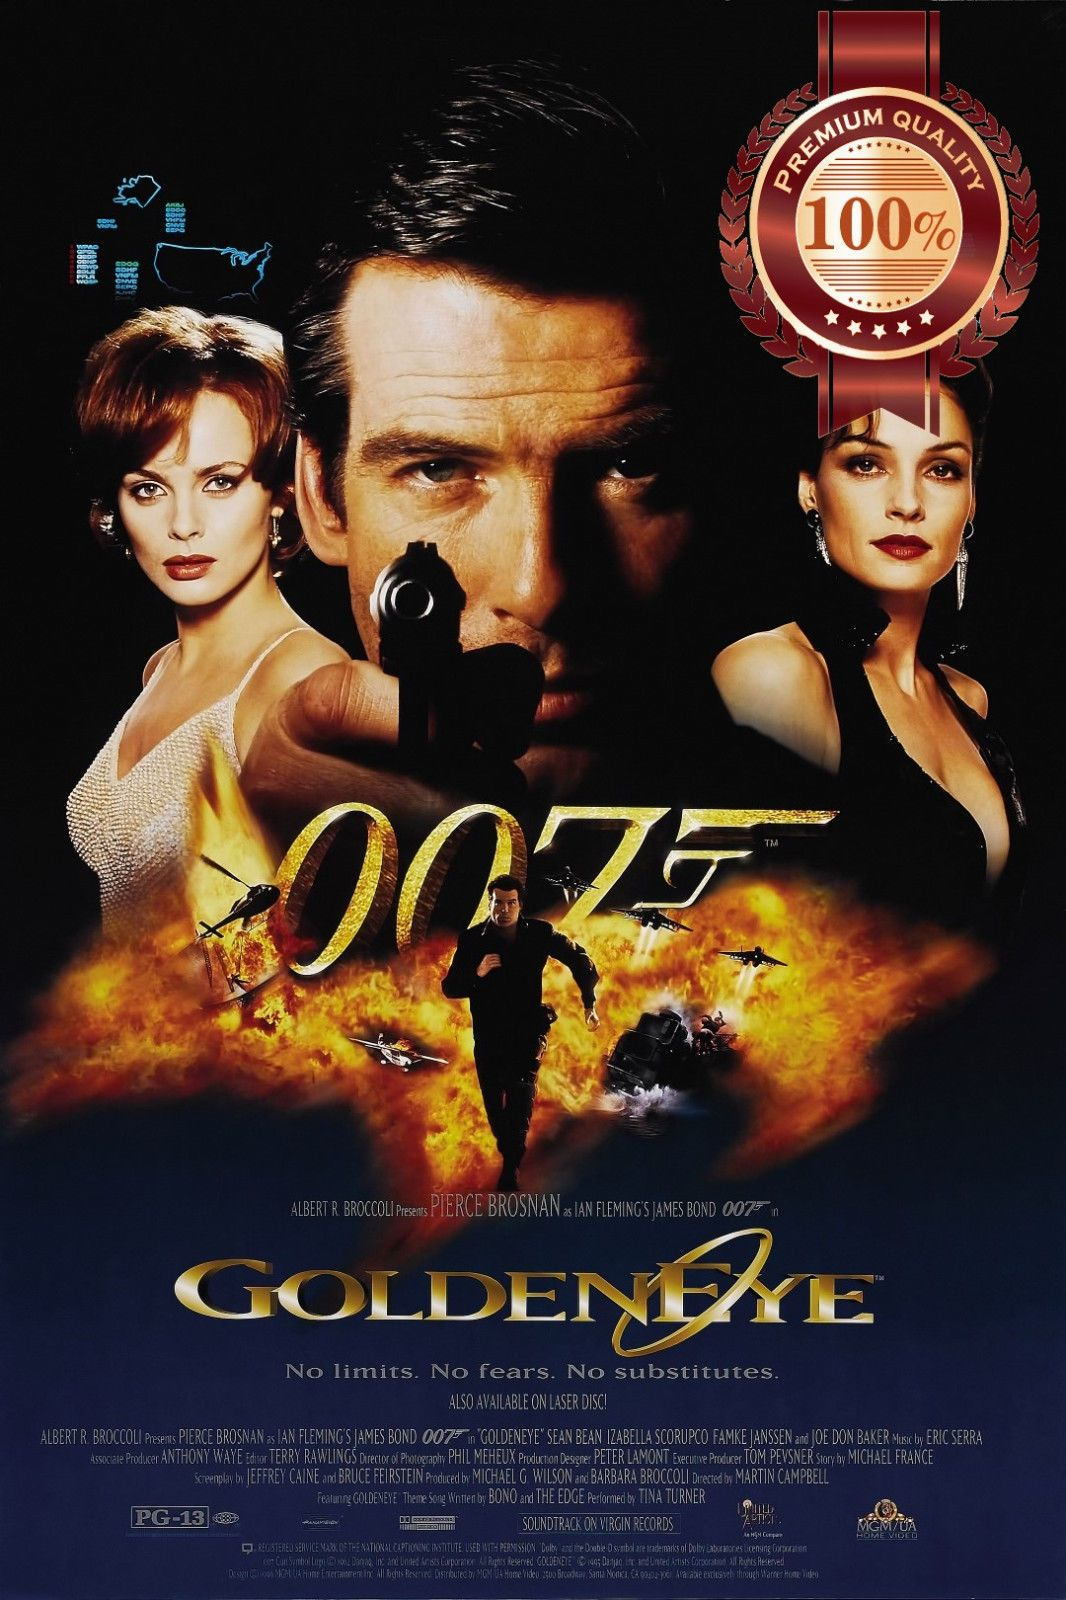 11 95 Aud Goldeneye 007 James Bond Movie Film Original Cinema